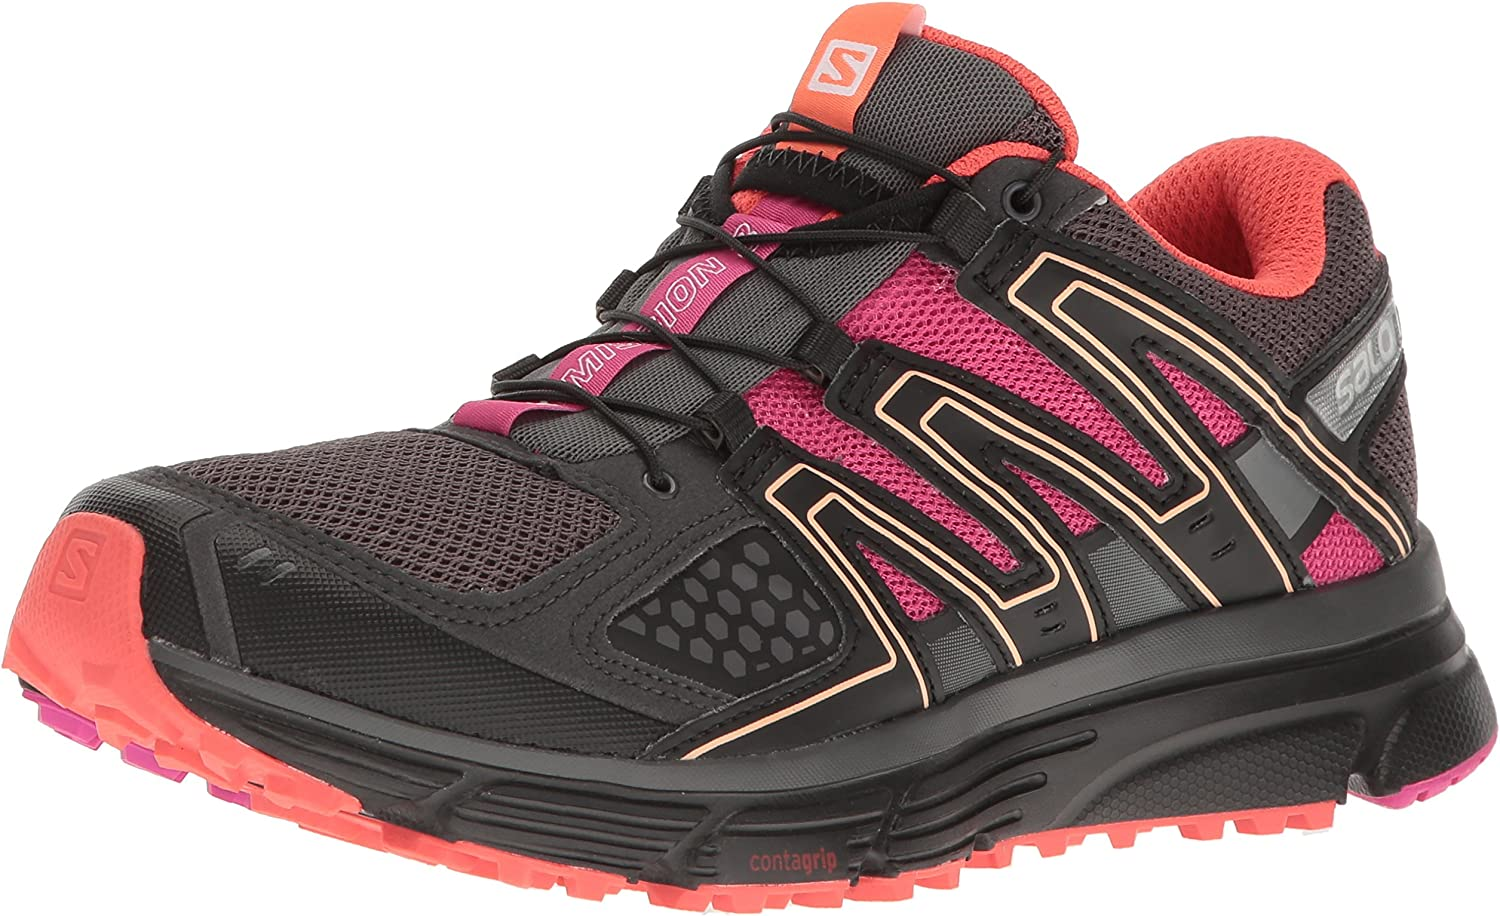 Salomon Women s X-Mission 3 Trail Running Shoes